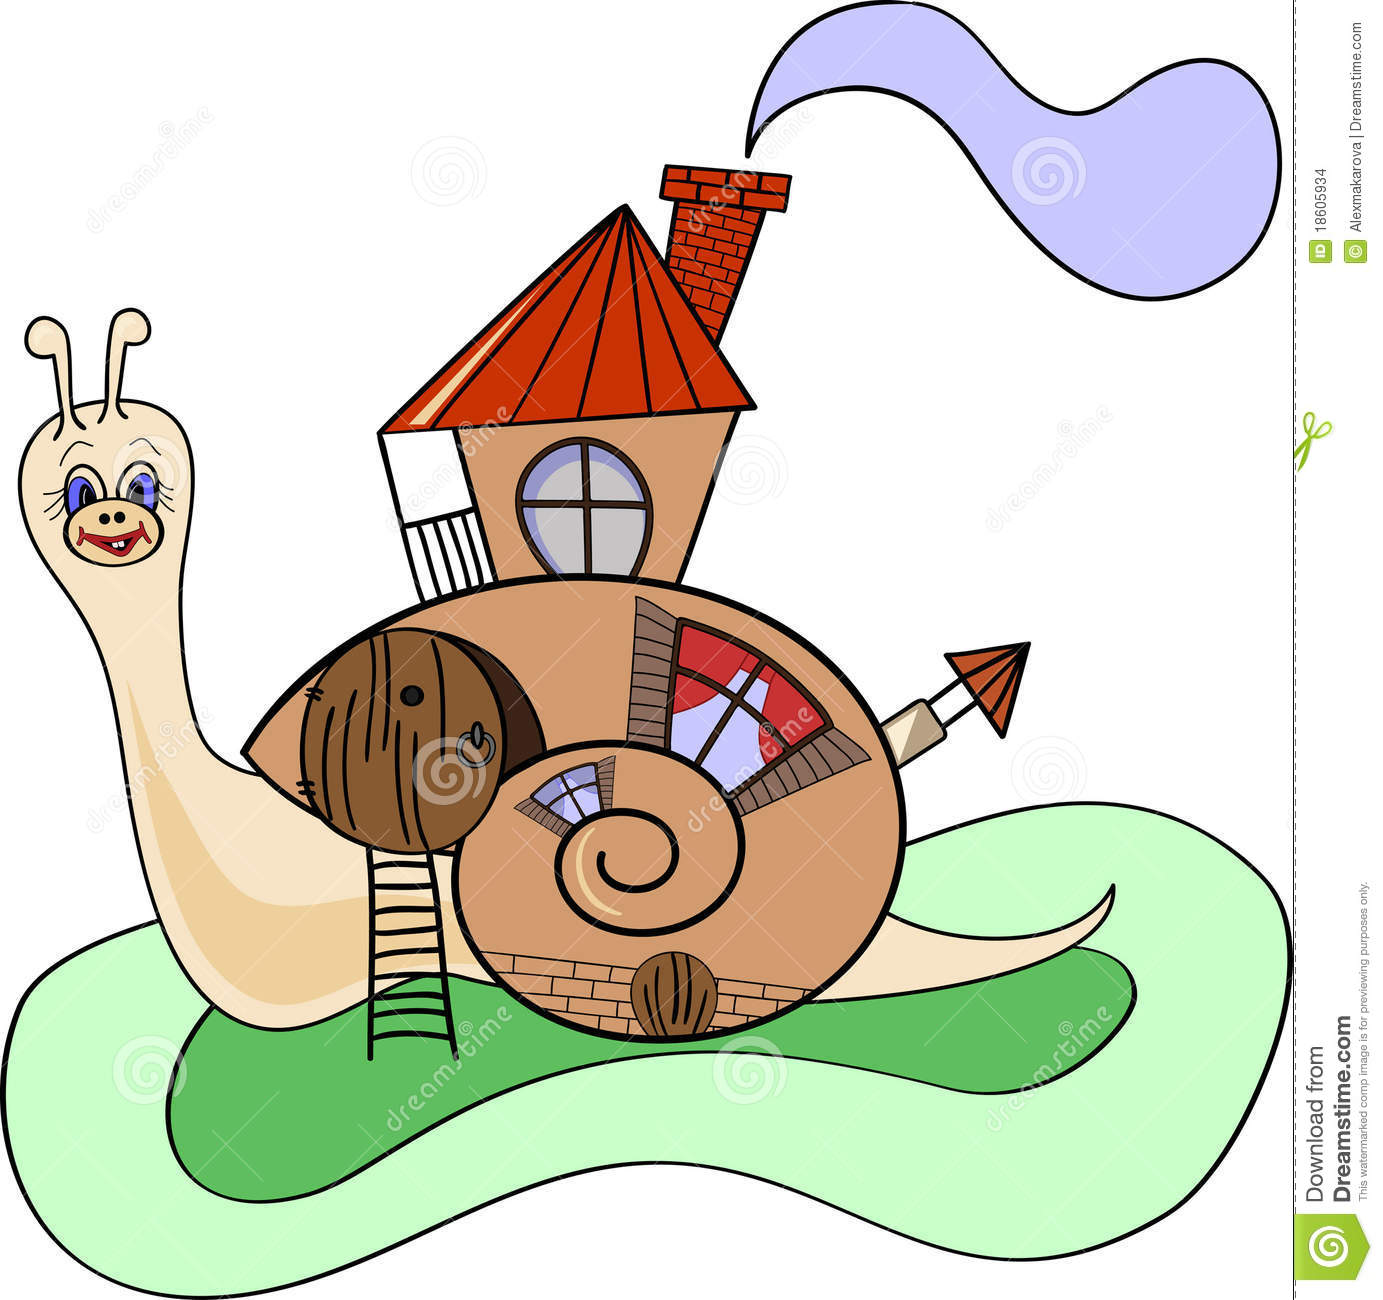 Escargot maison illustration de vecteur image du - Clipart escargot ...